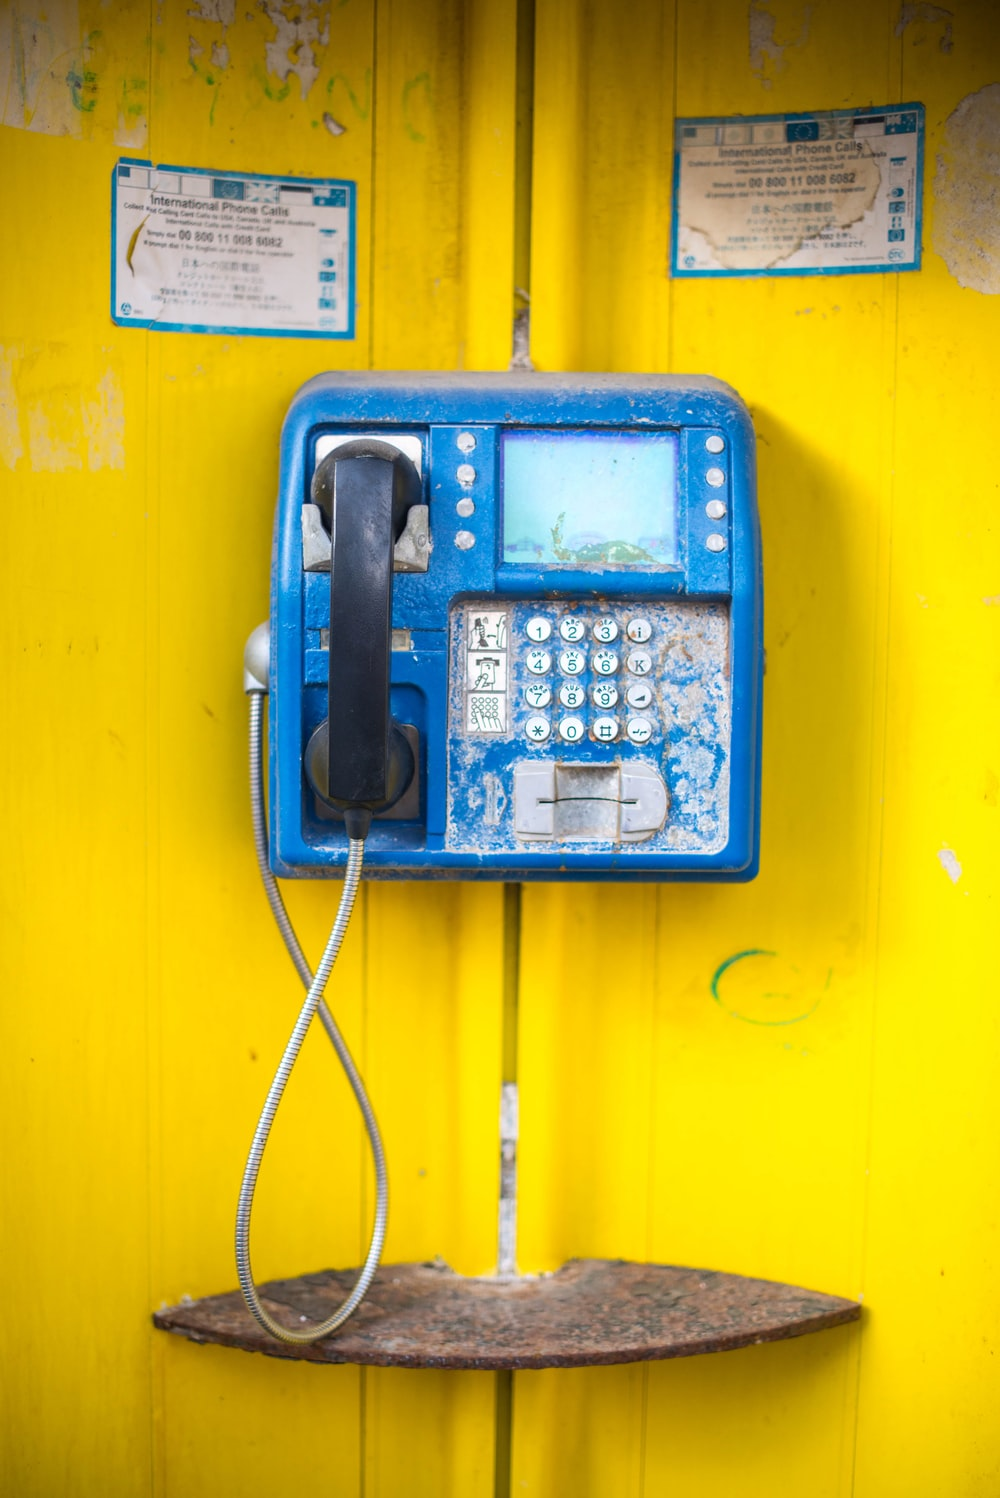 blue and black telephone mounted on yellow wall